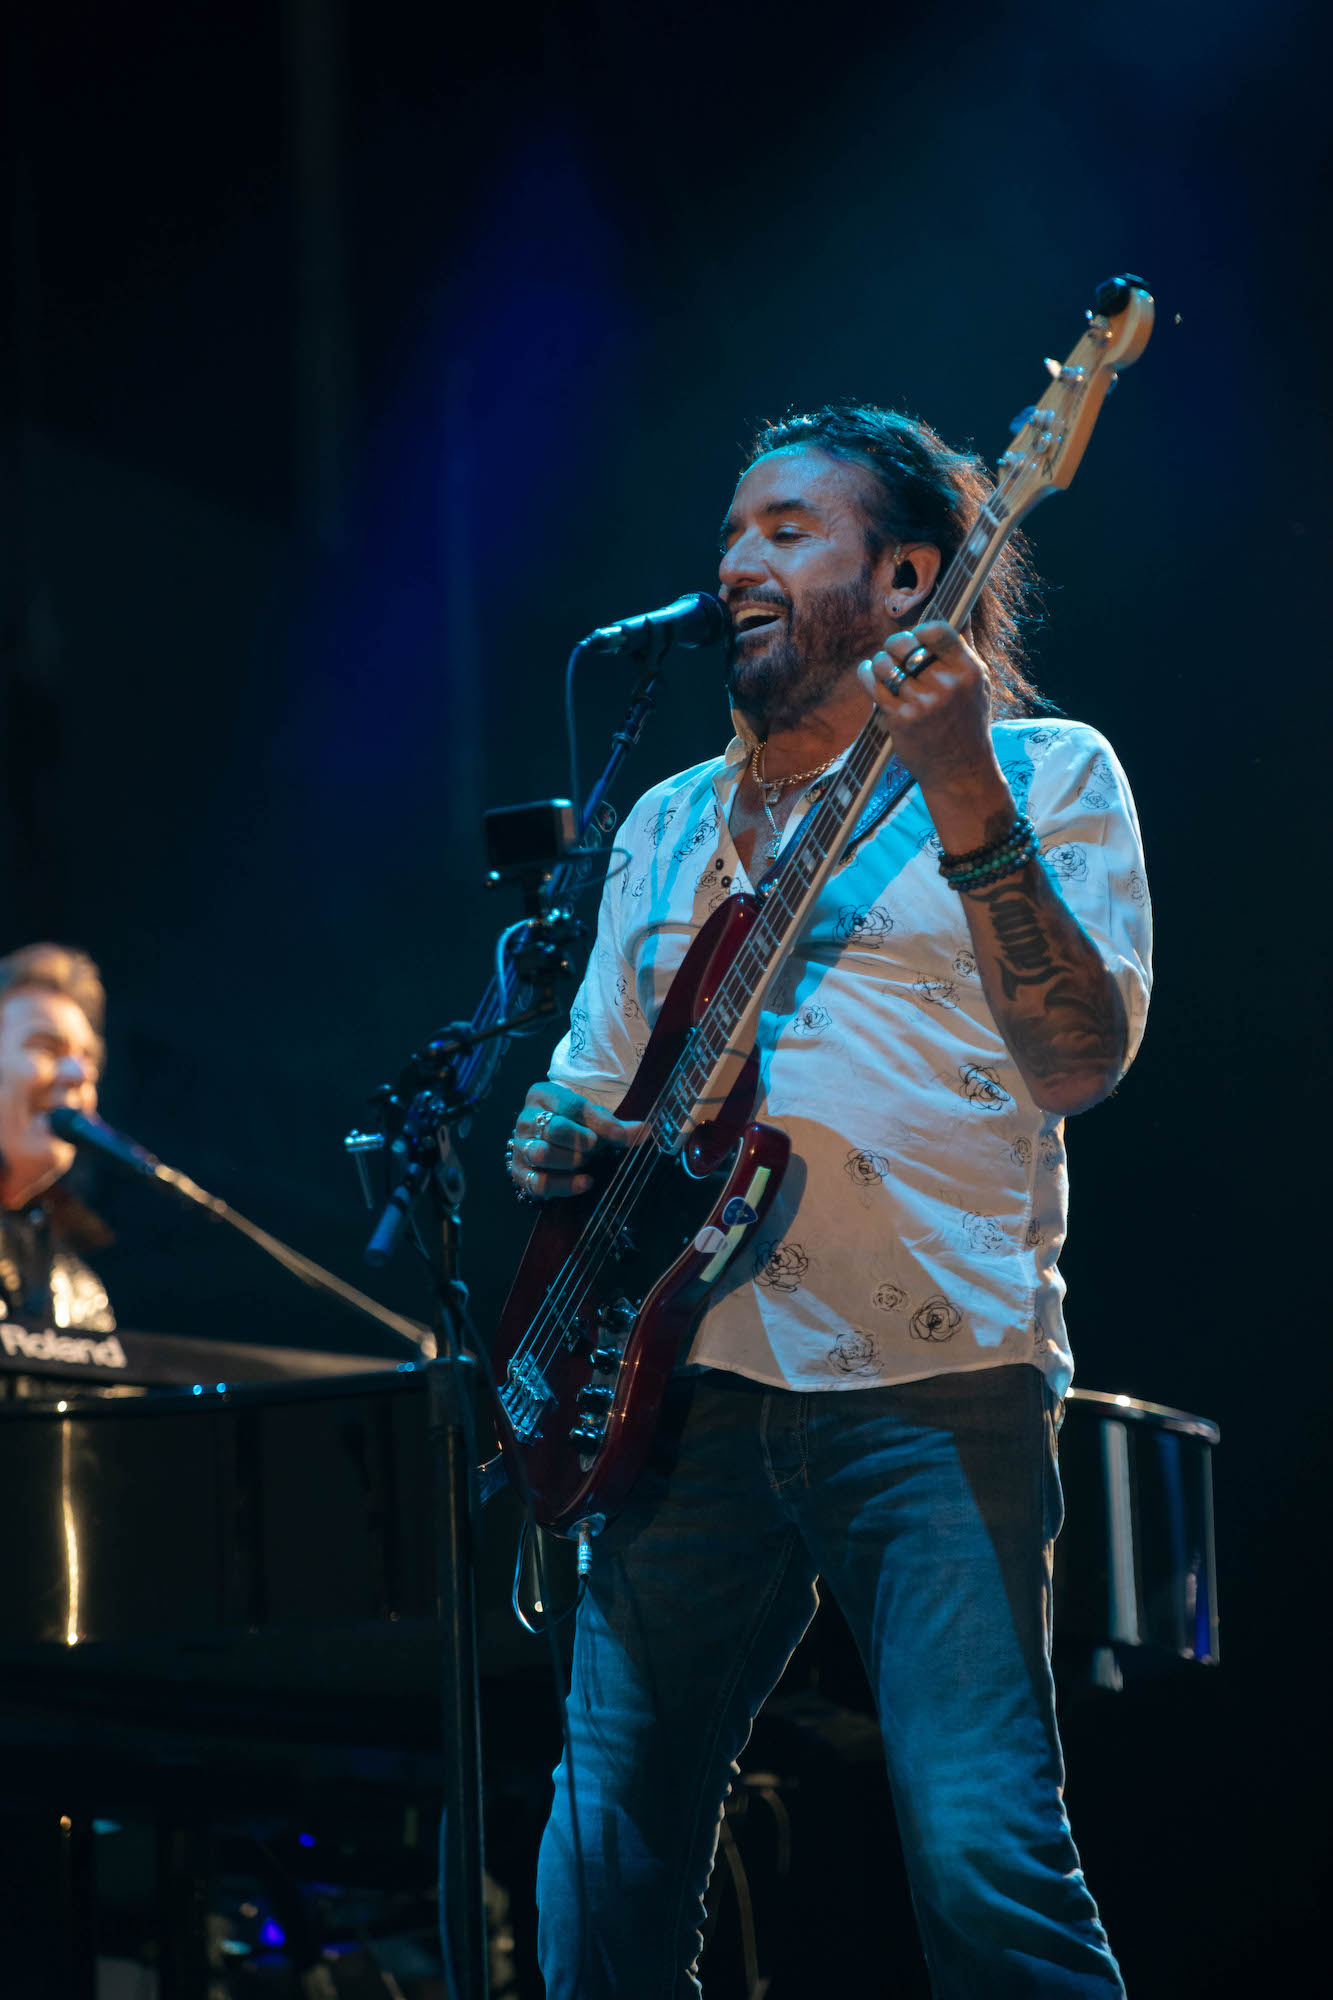 Journey Live at Lollapalooza [GALLERY] 11